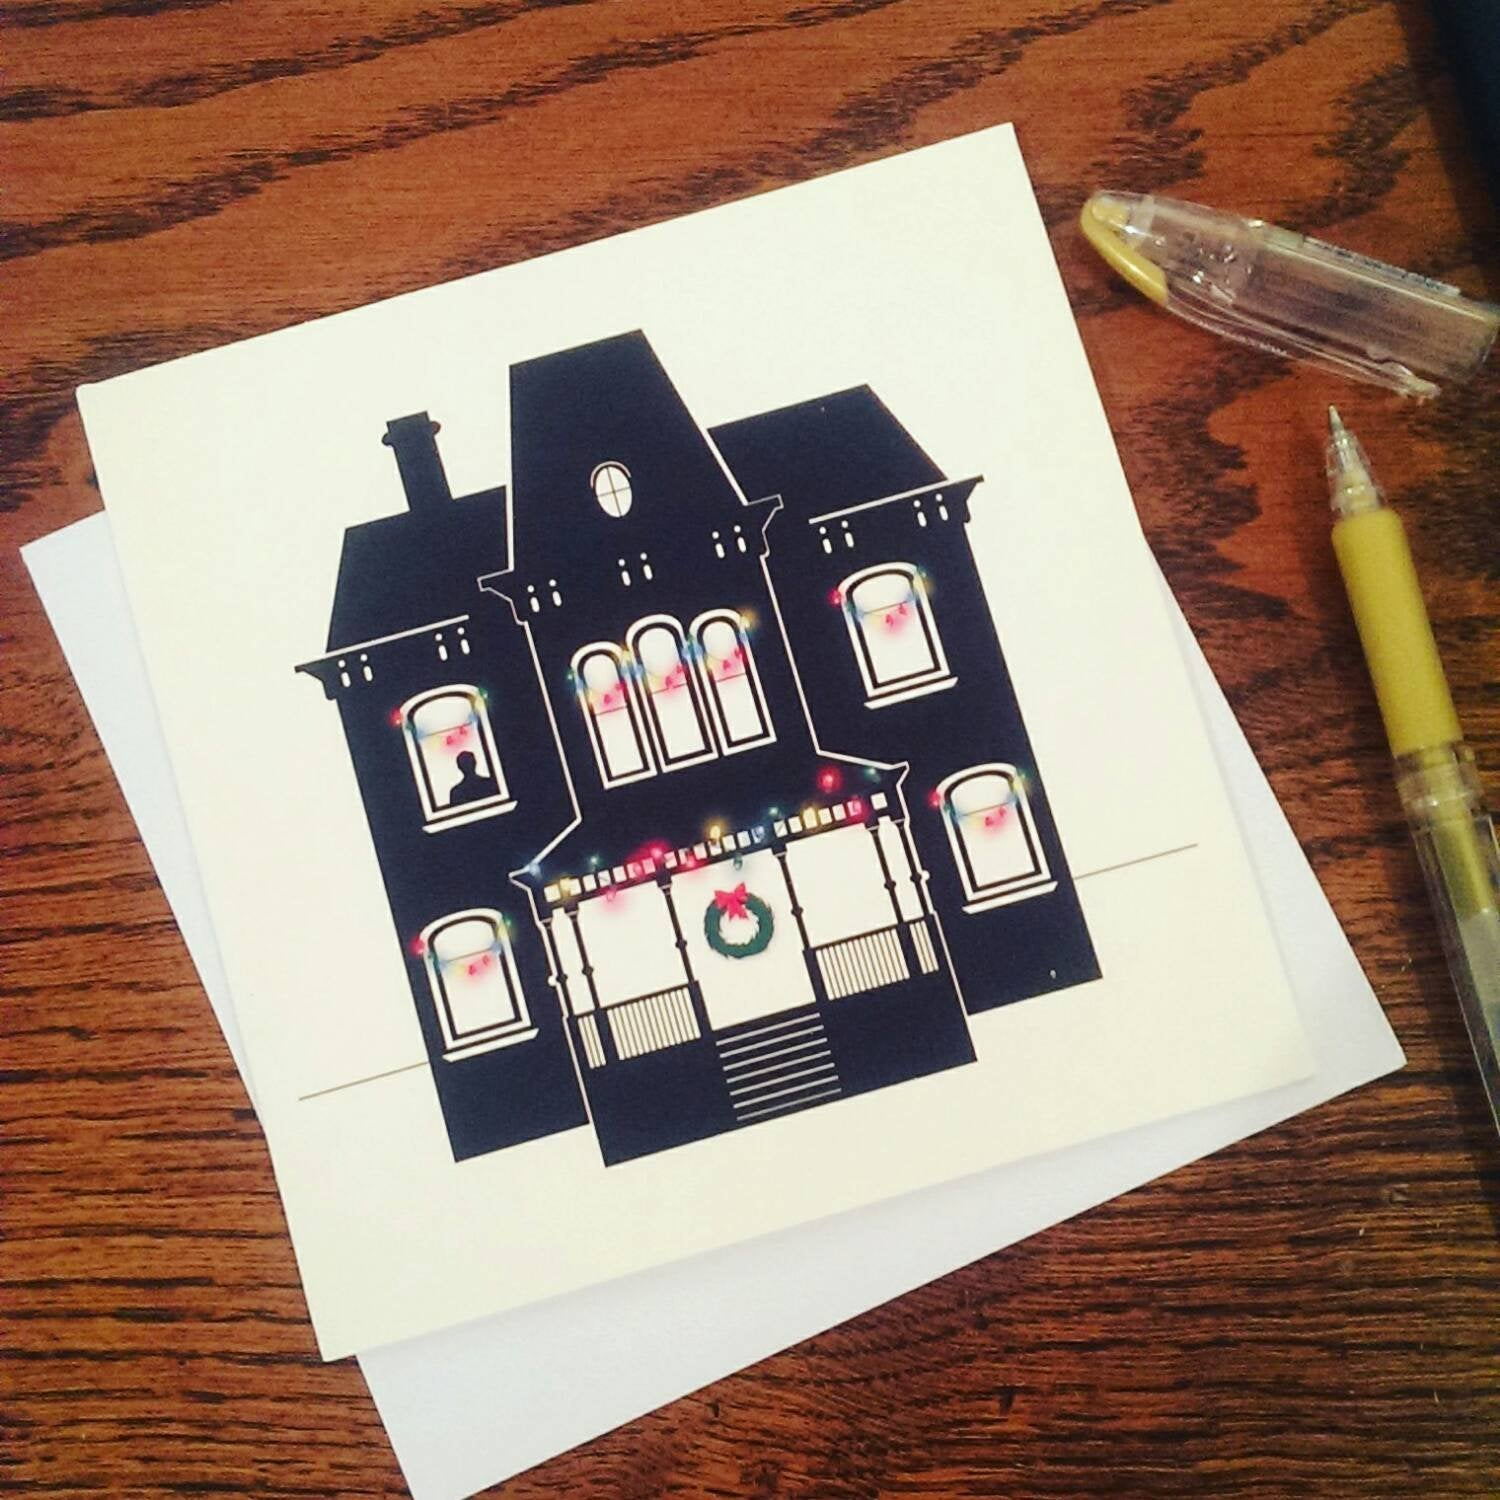 Bates Motel, Psycho, Horror House, Norman Bates, Horror, Christmas Card, Seasons greetings - ByCandlelight27